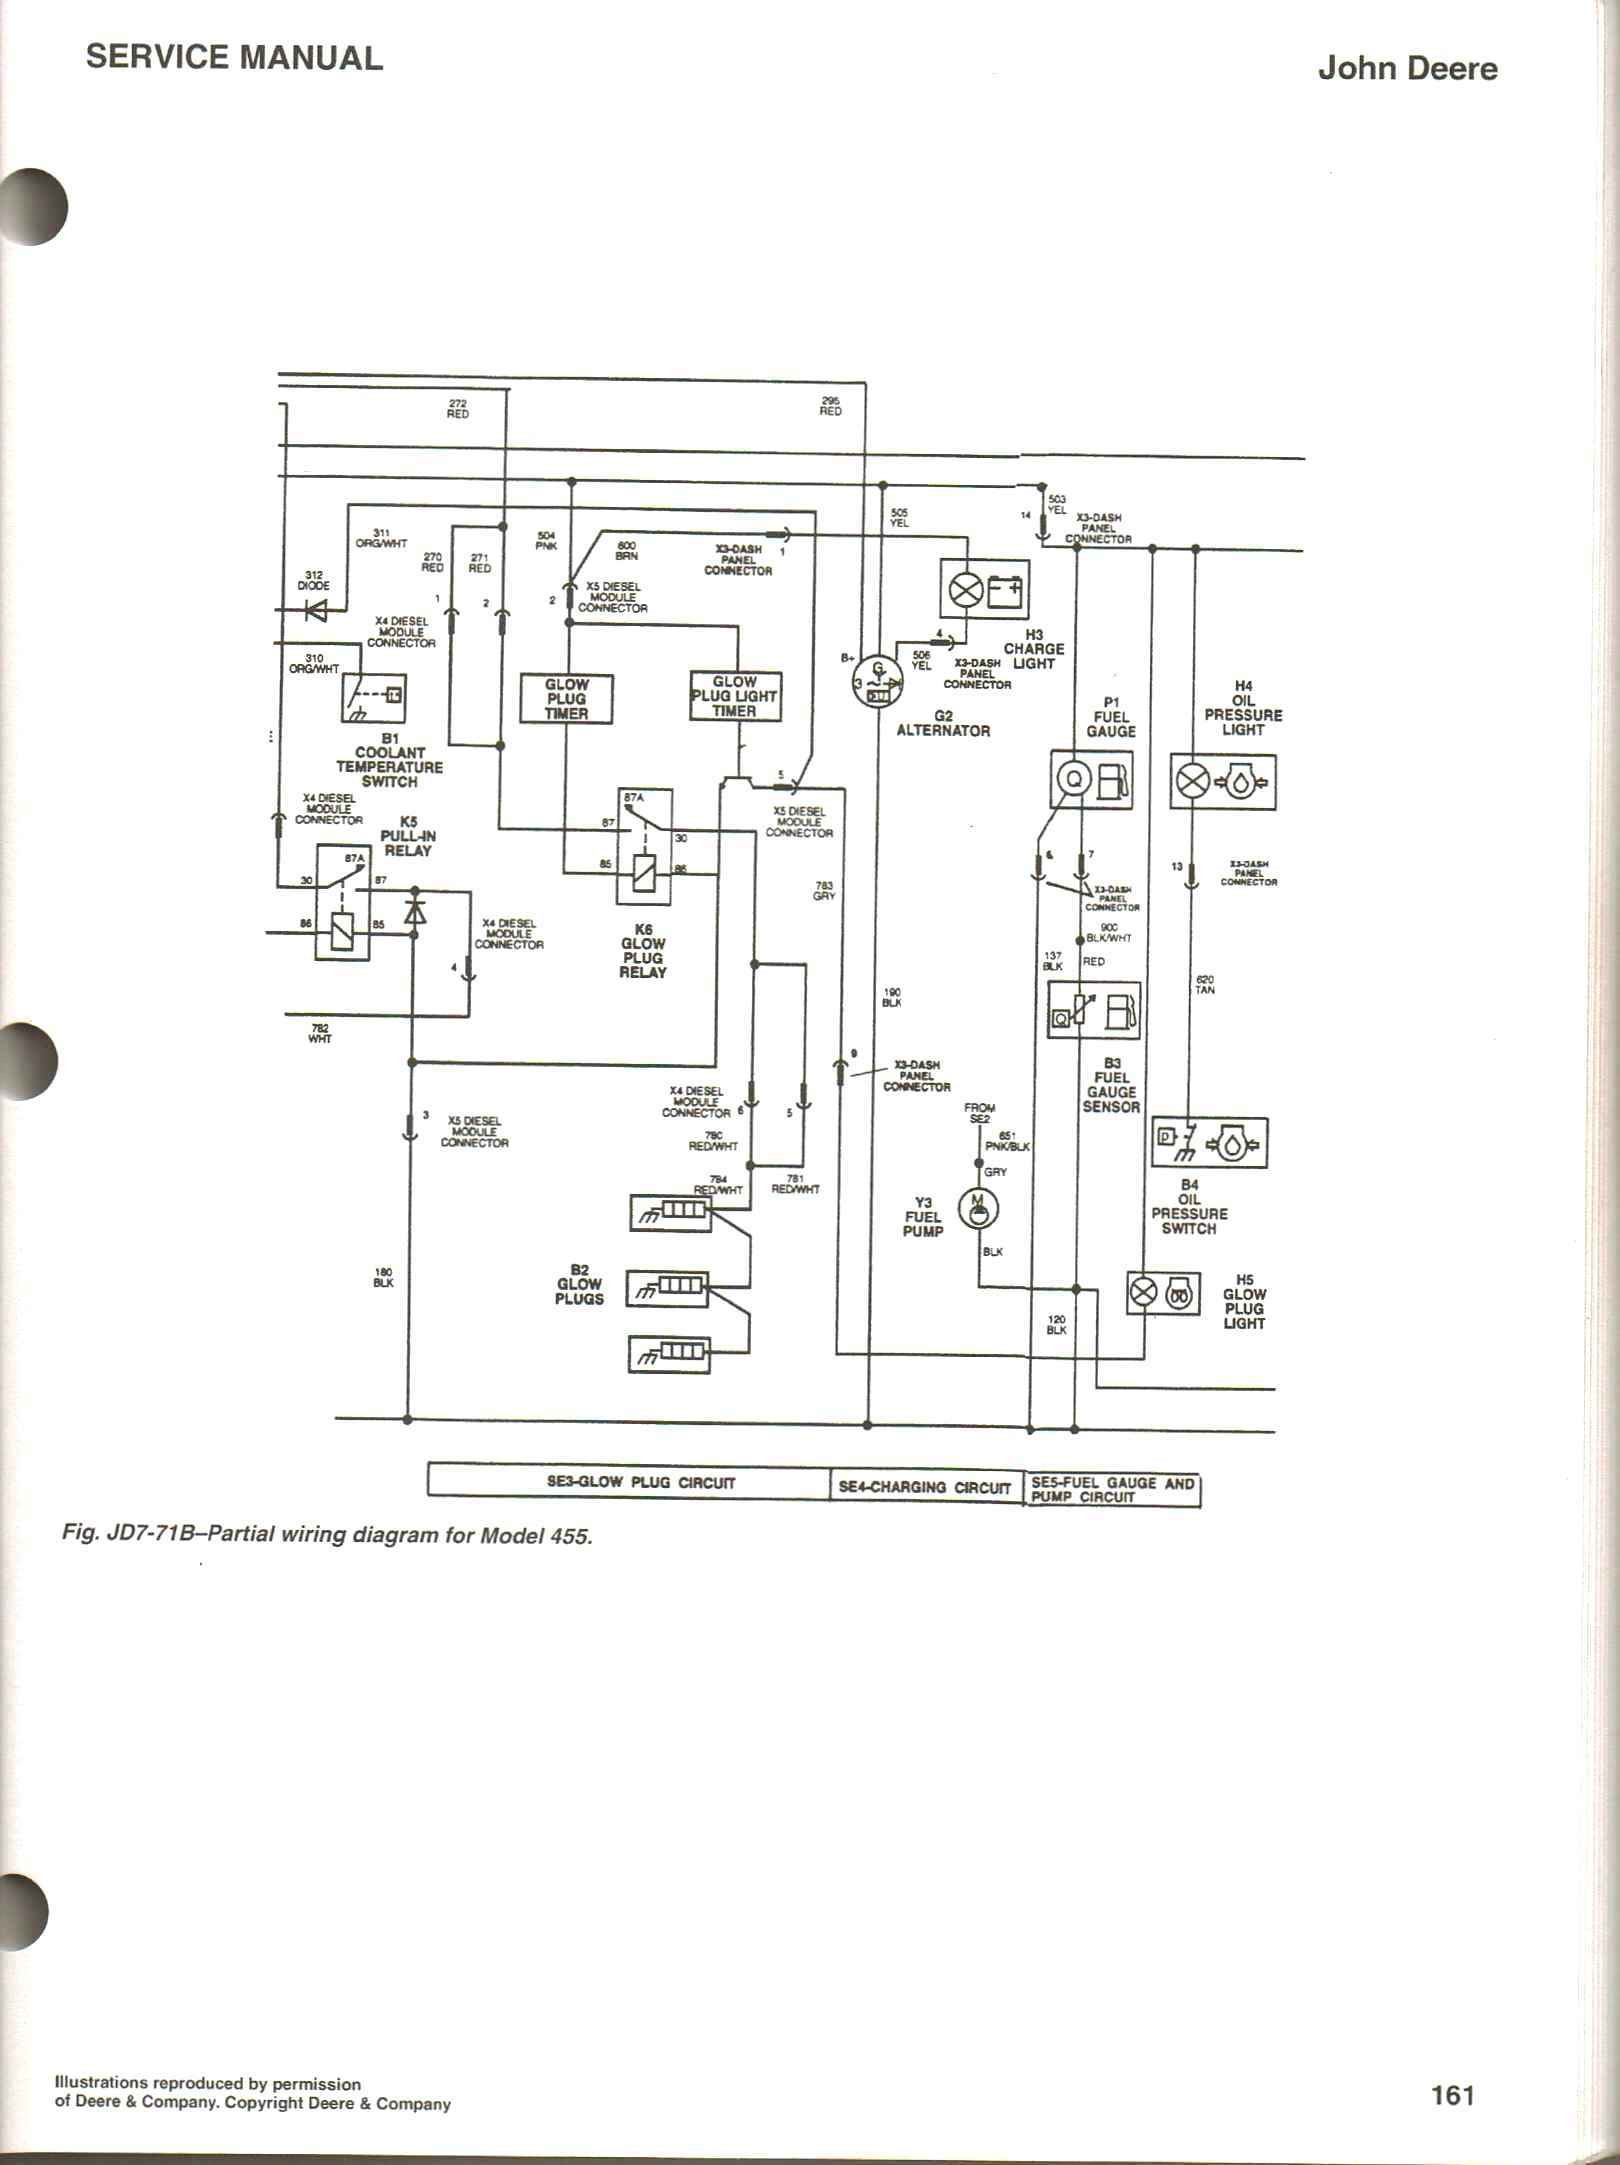 John Deere Gator 6x4 Wiring Diagram Collection